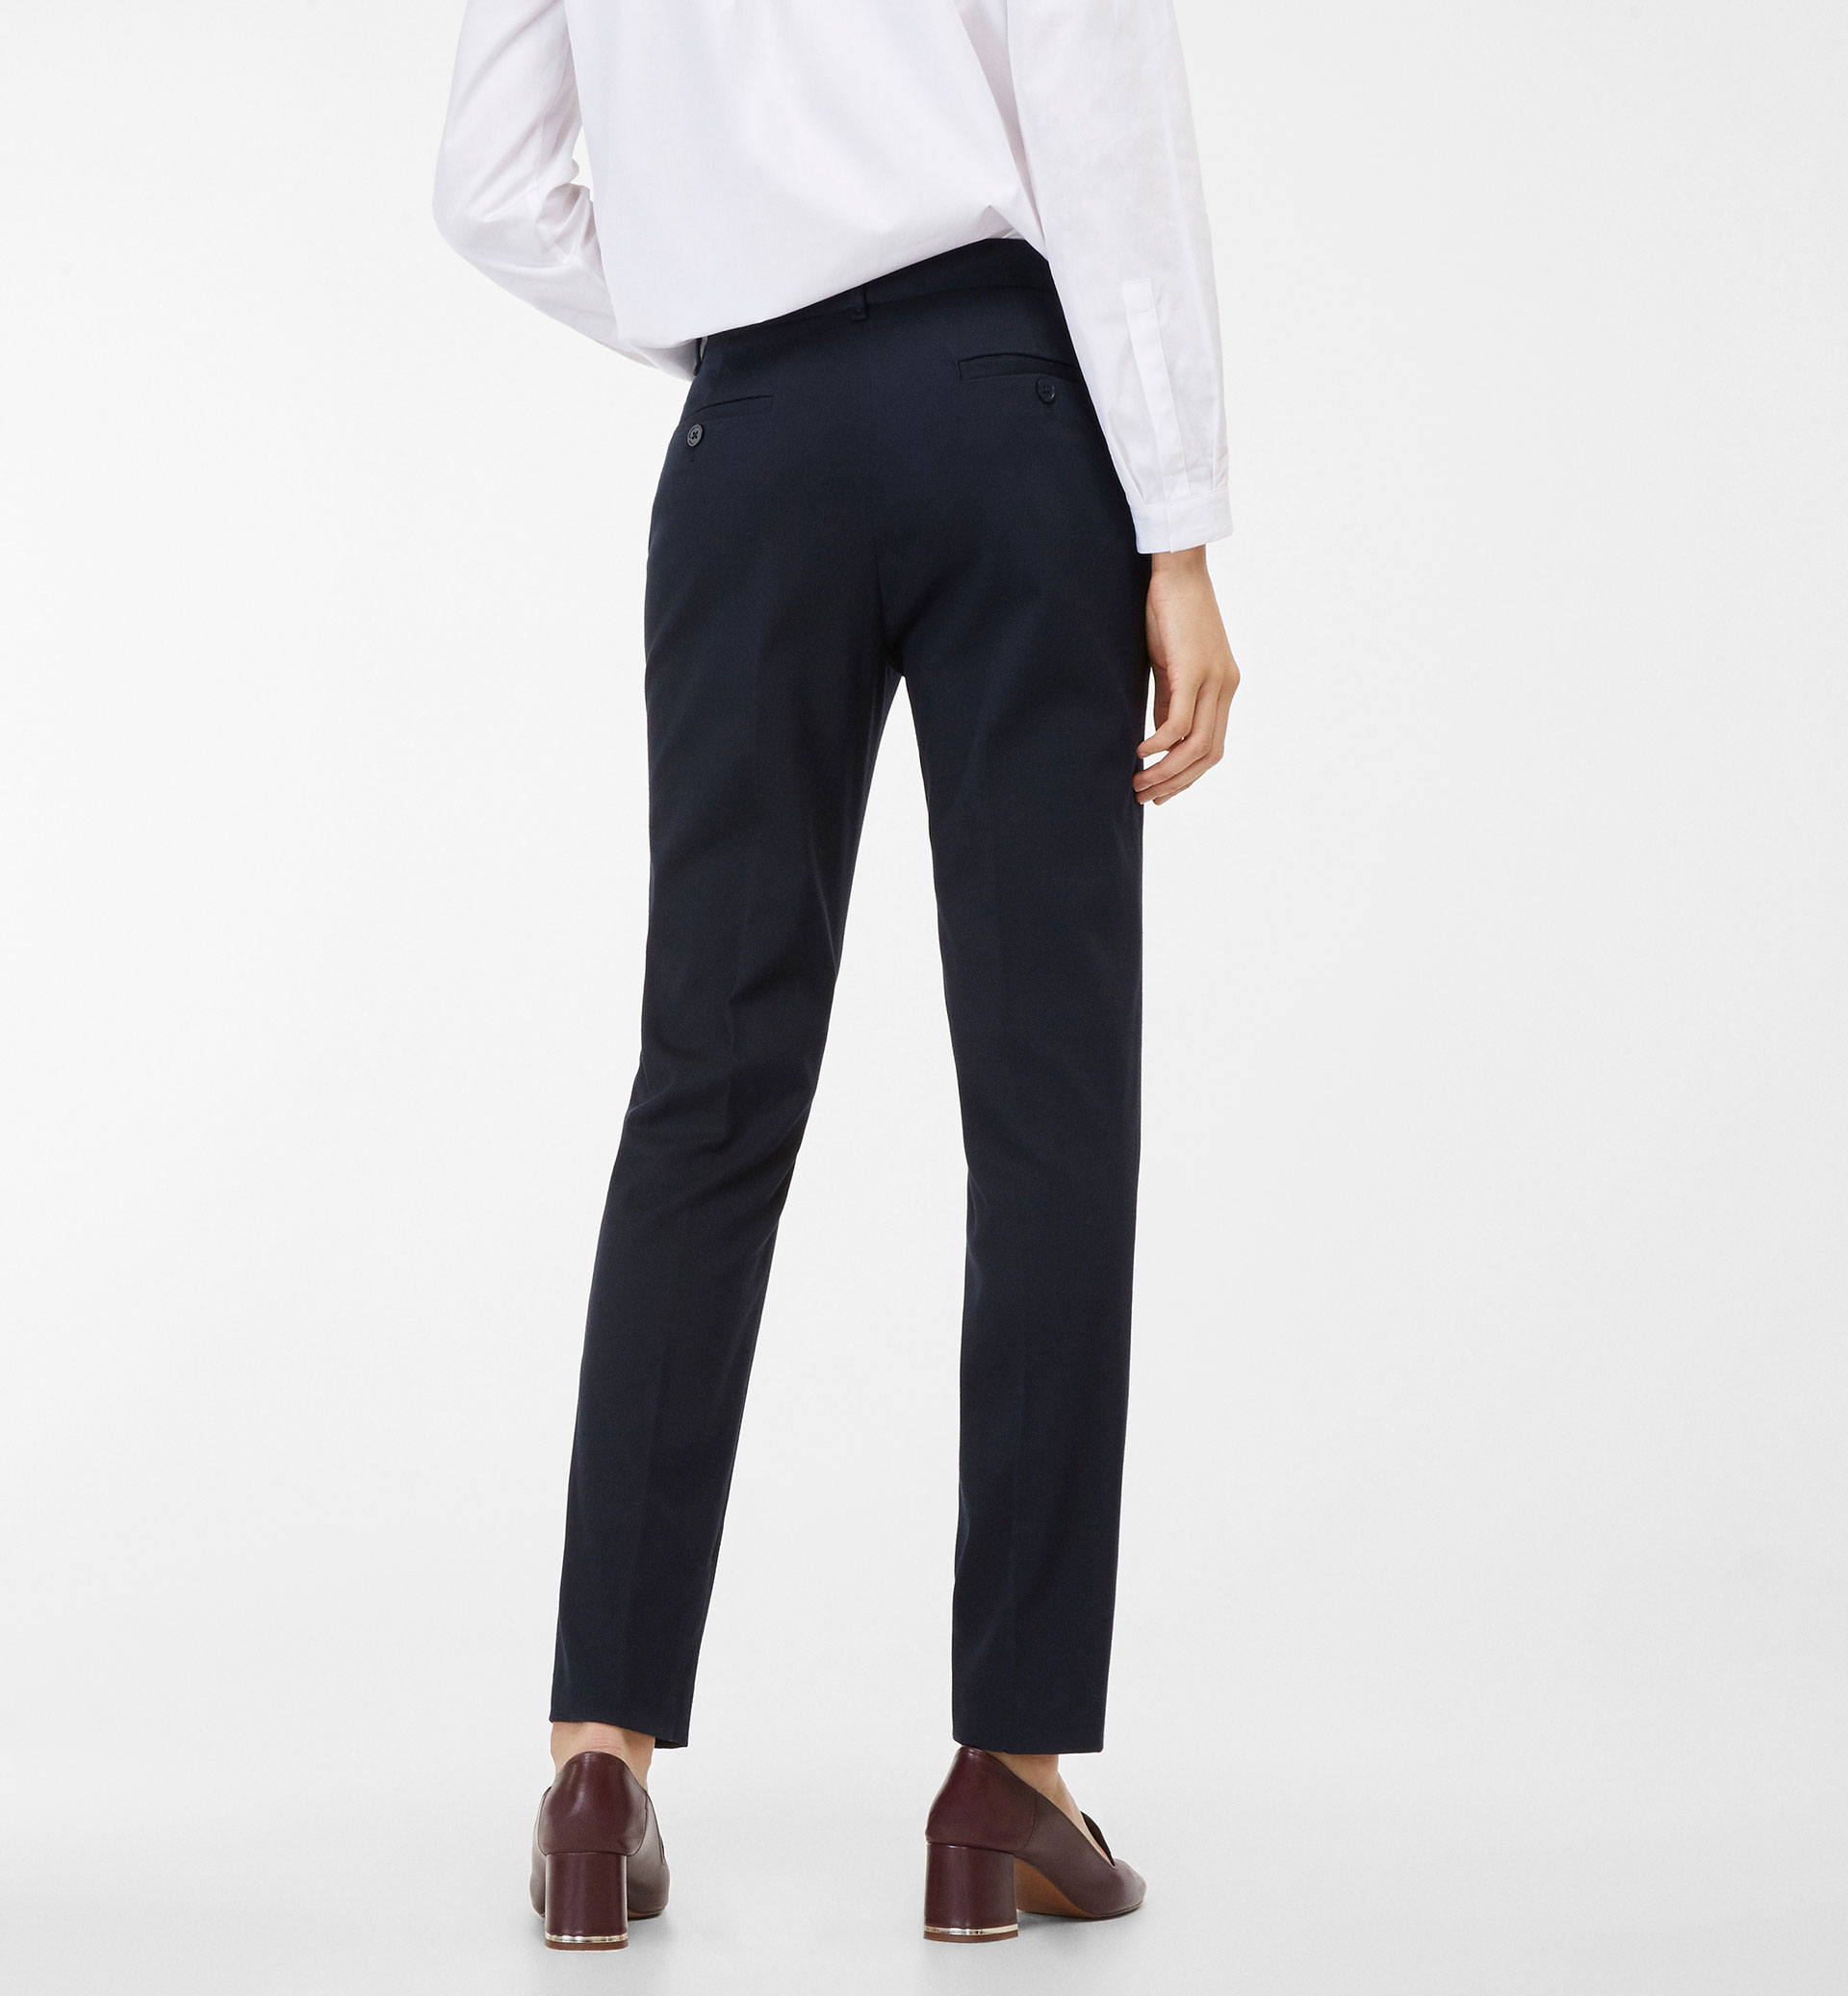 BASIC NAVY BLUE TWILL TROUSERS